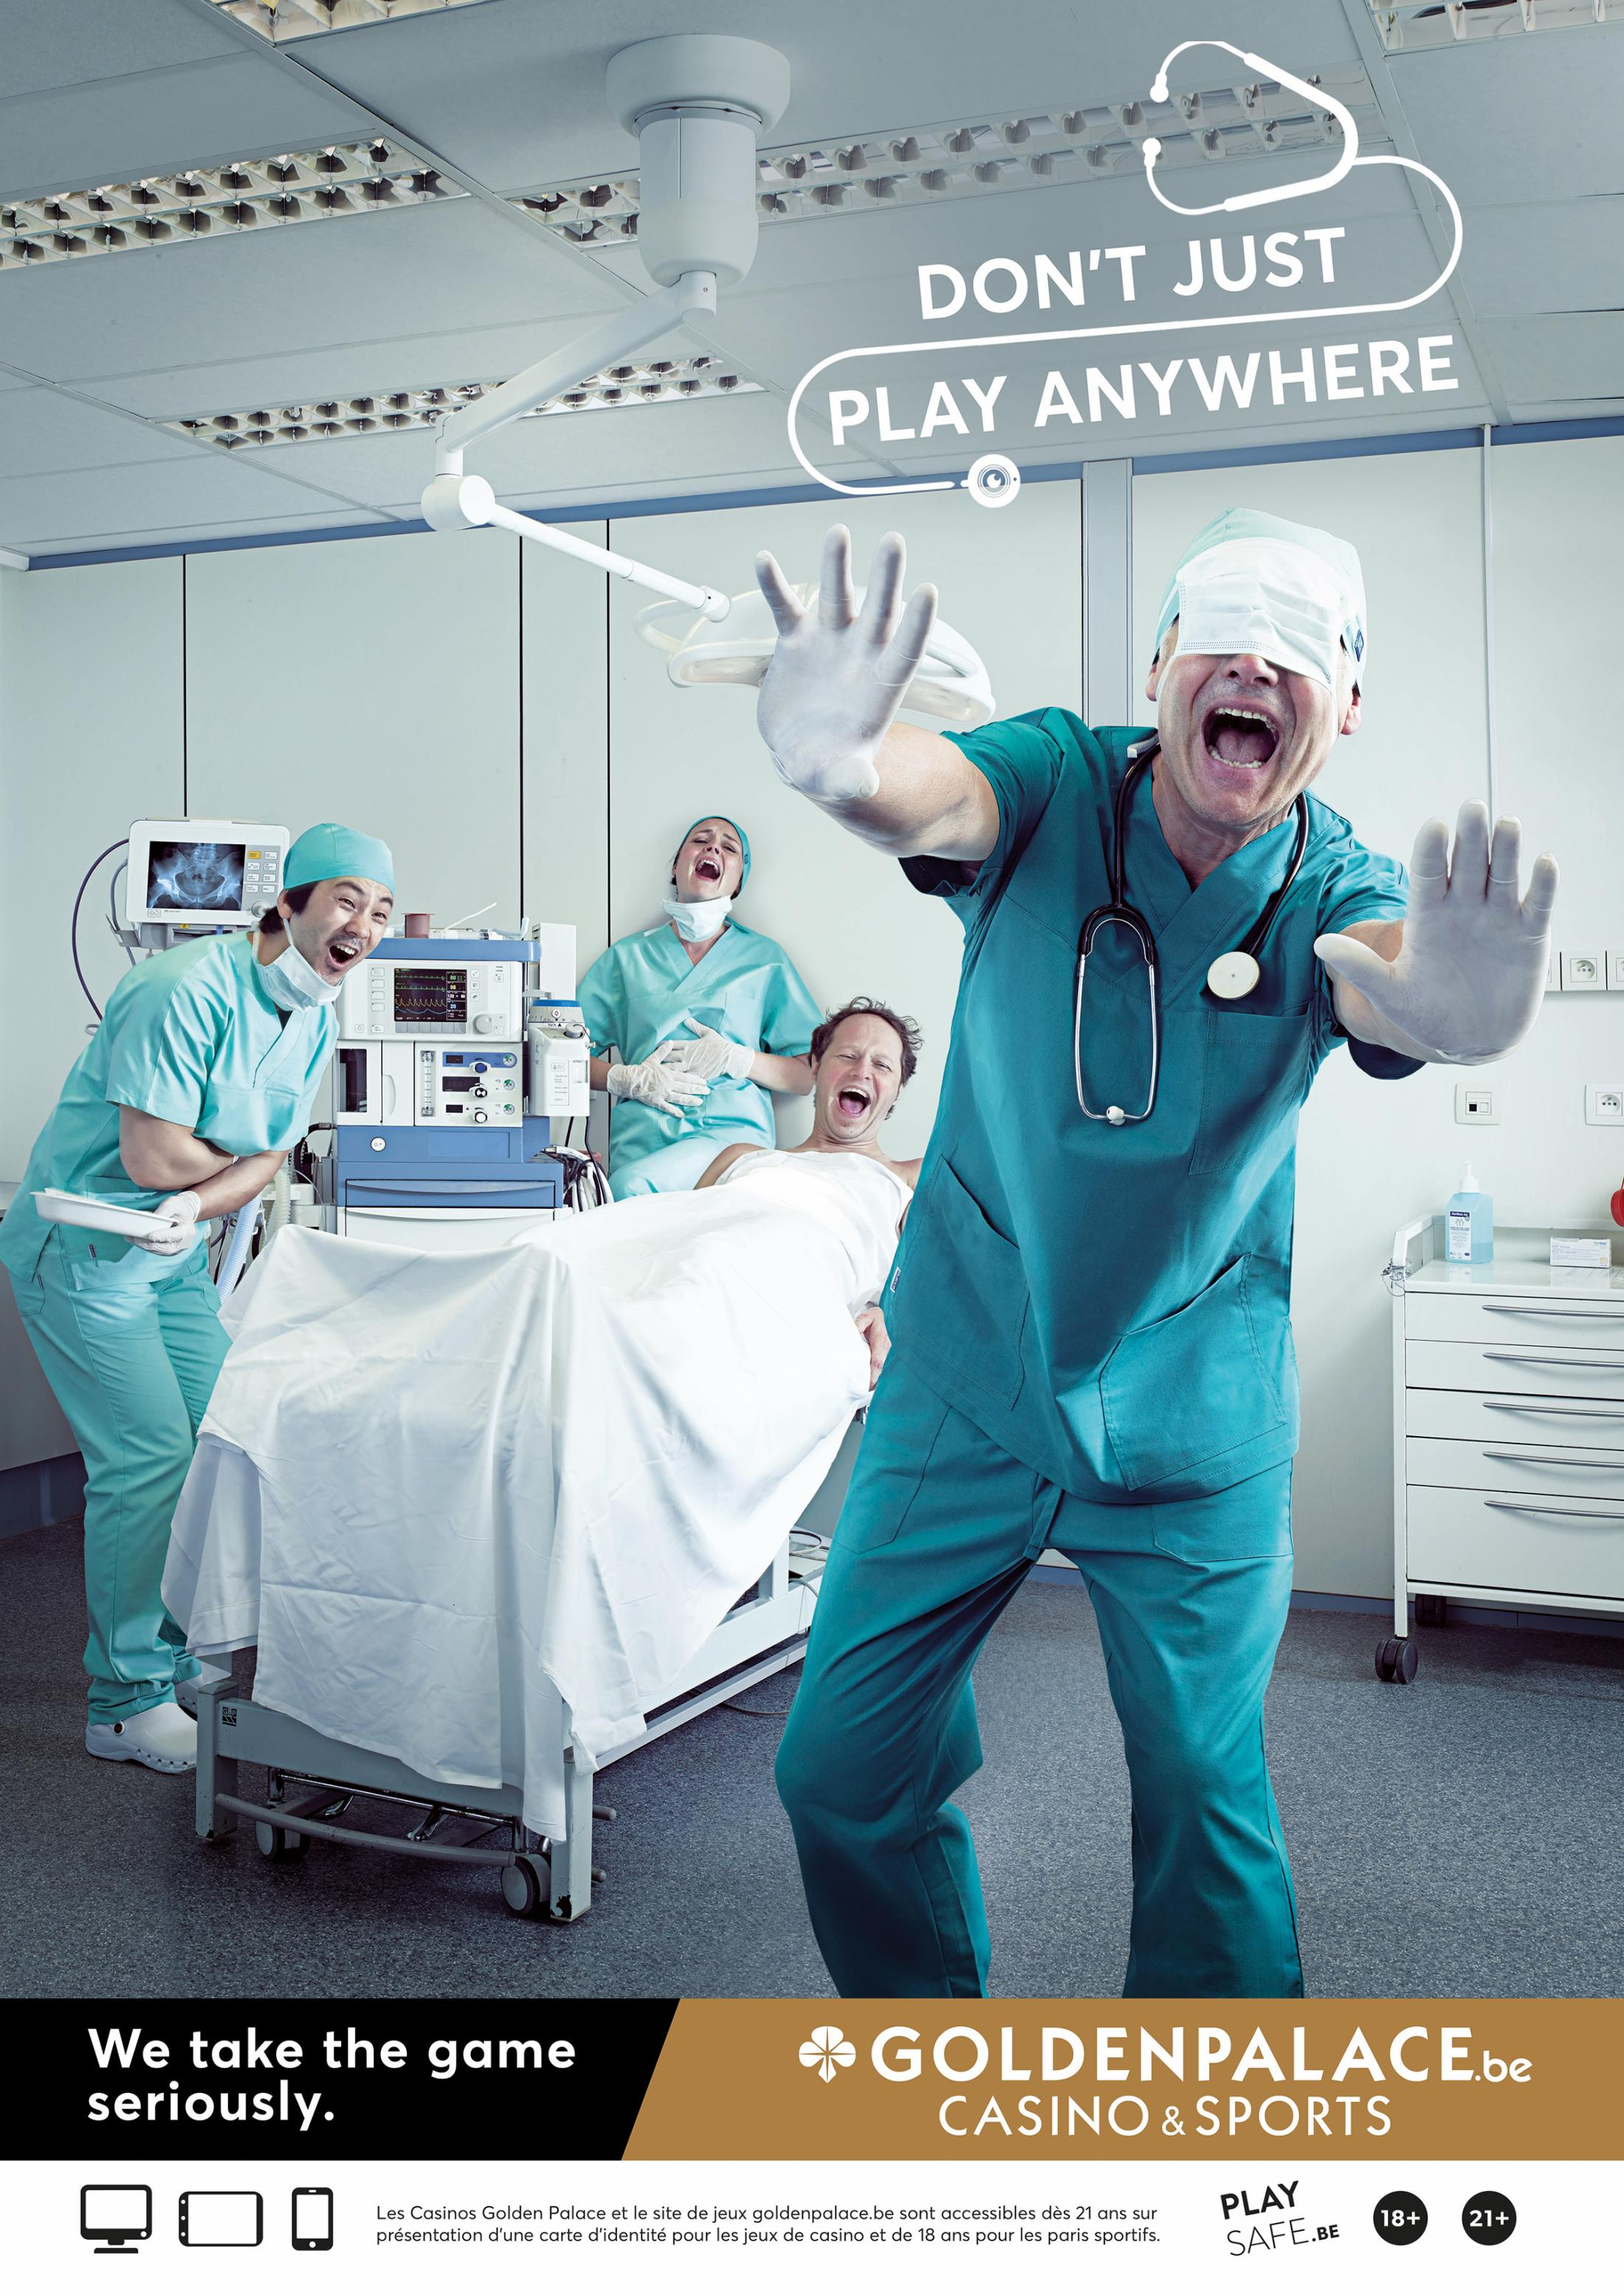 Golden Palace Print Ad - Don't just play anywhere, 4